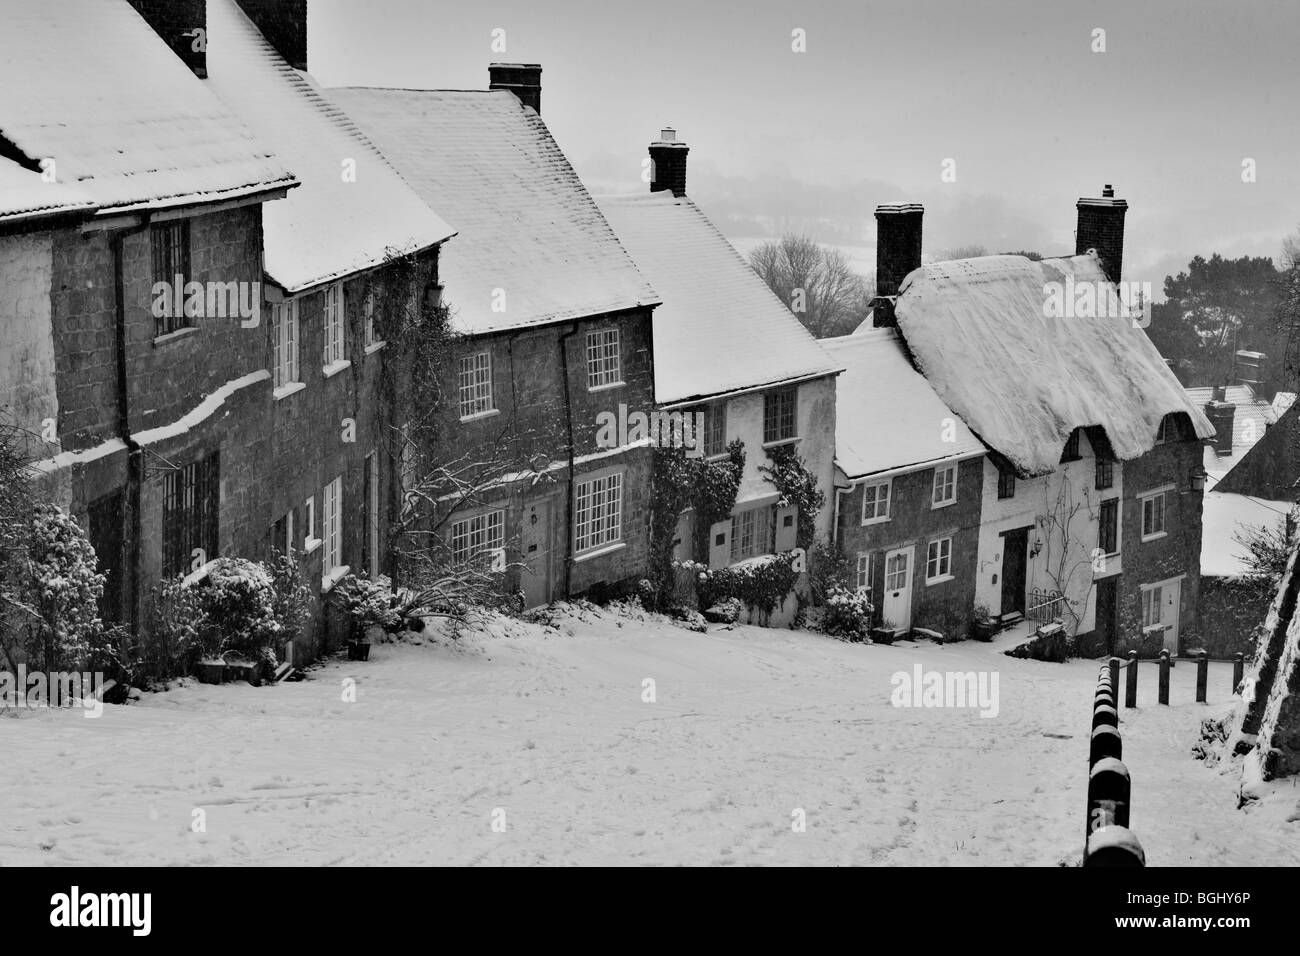 Winter on Gold Hill at Shaftesbury in Dorset depicting the famous row of traditional cottages situated on the cobbled - Stock Image